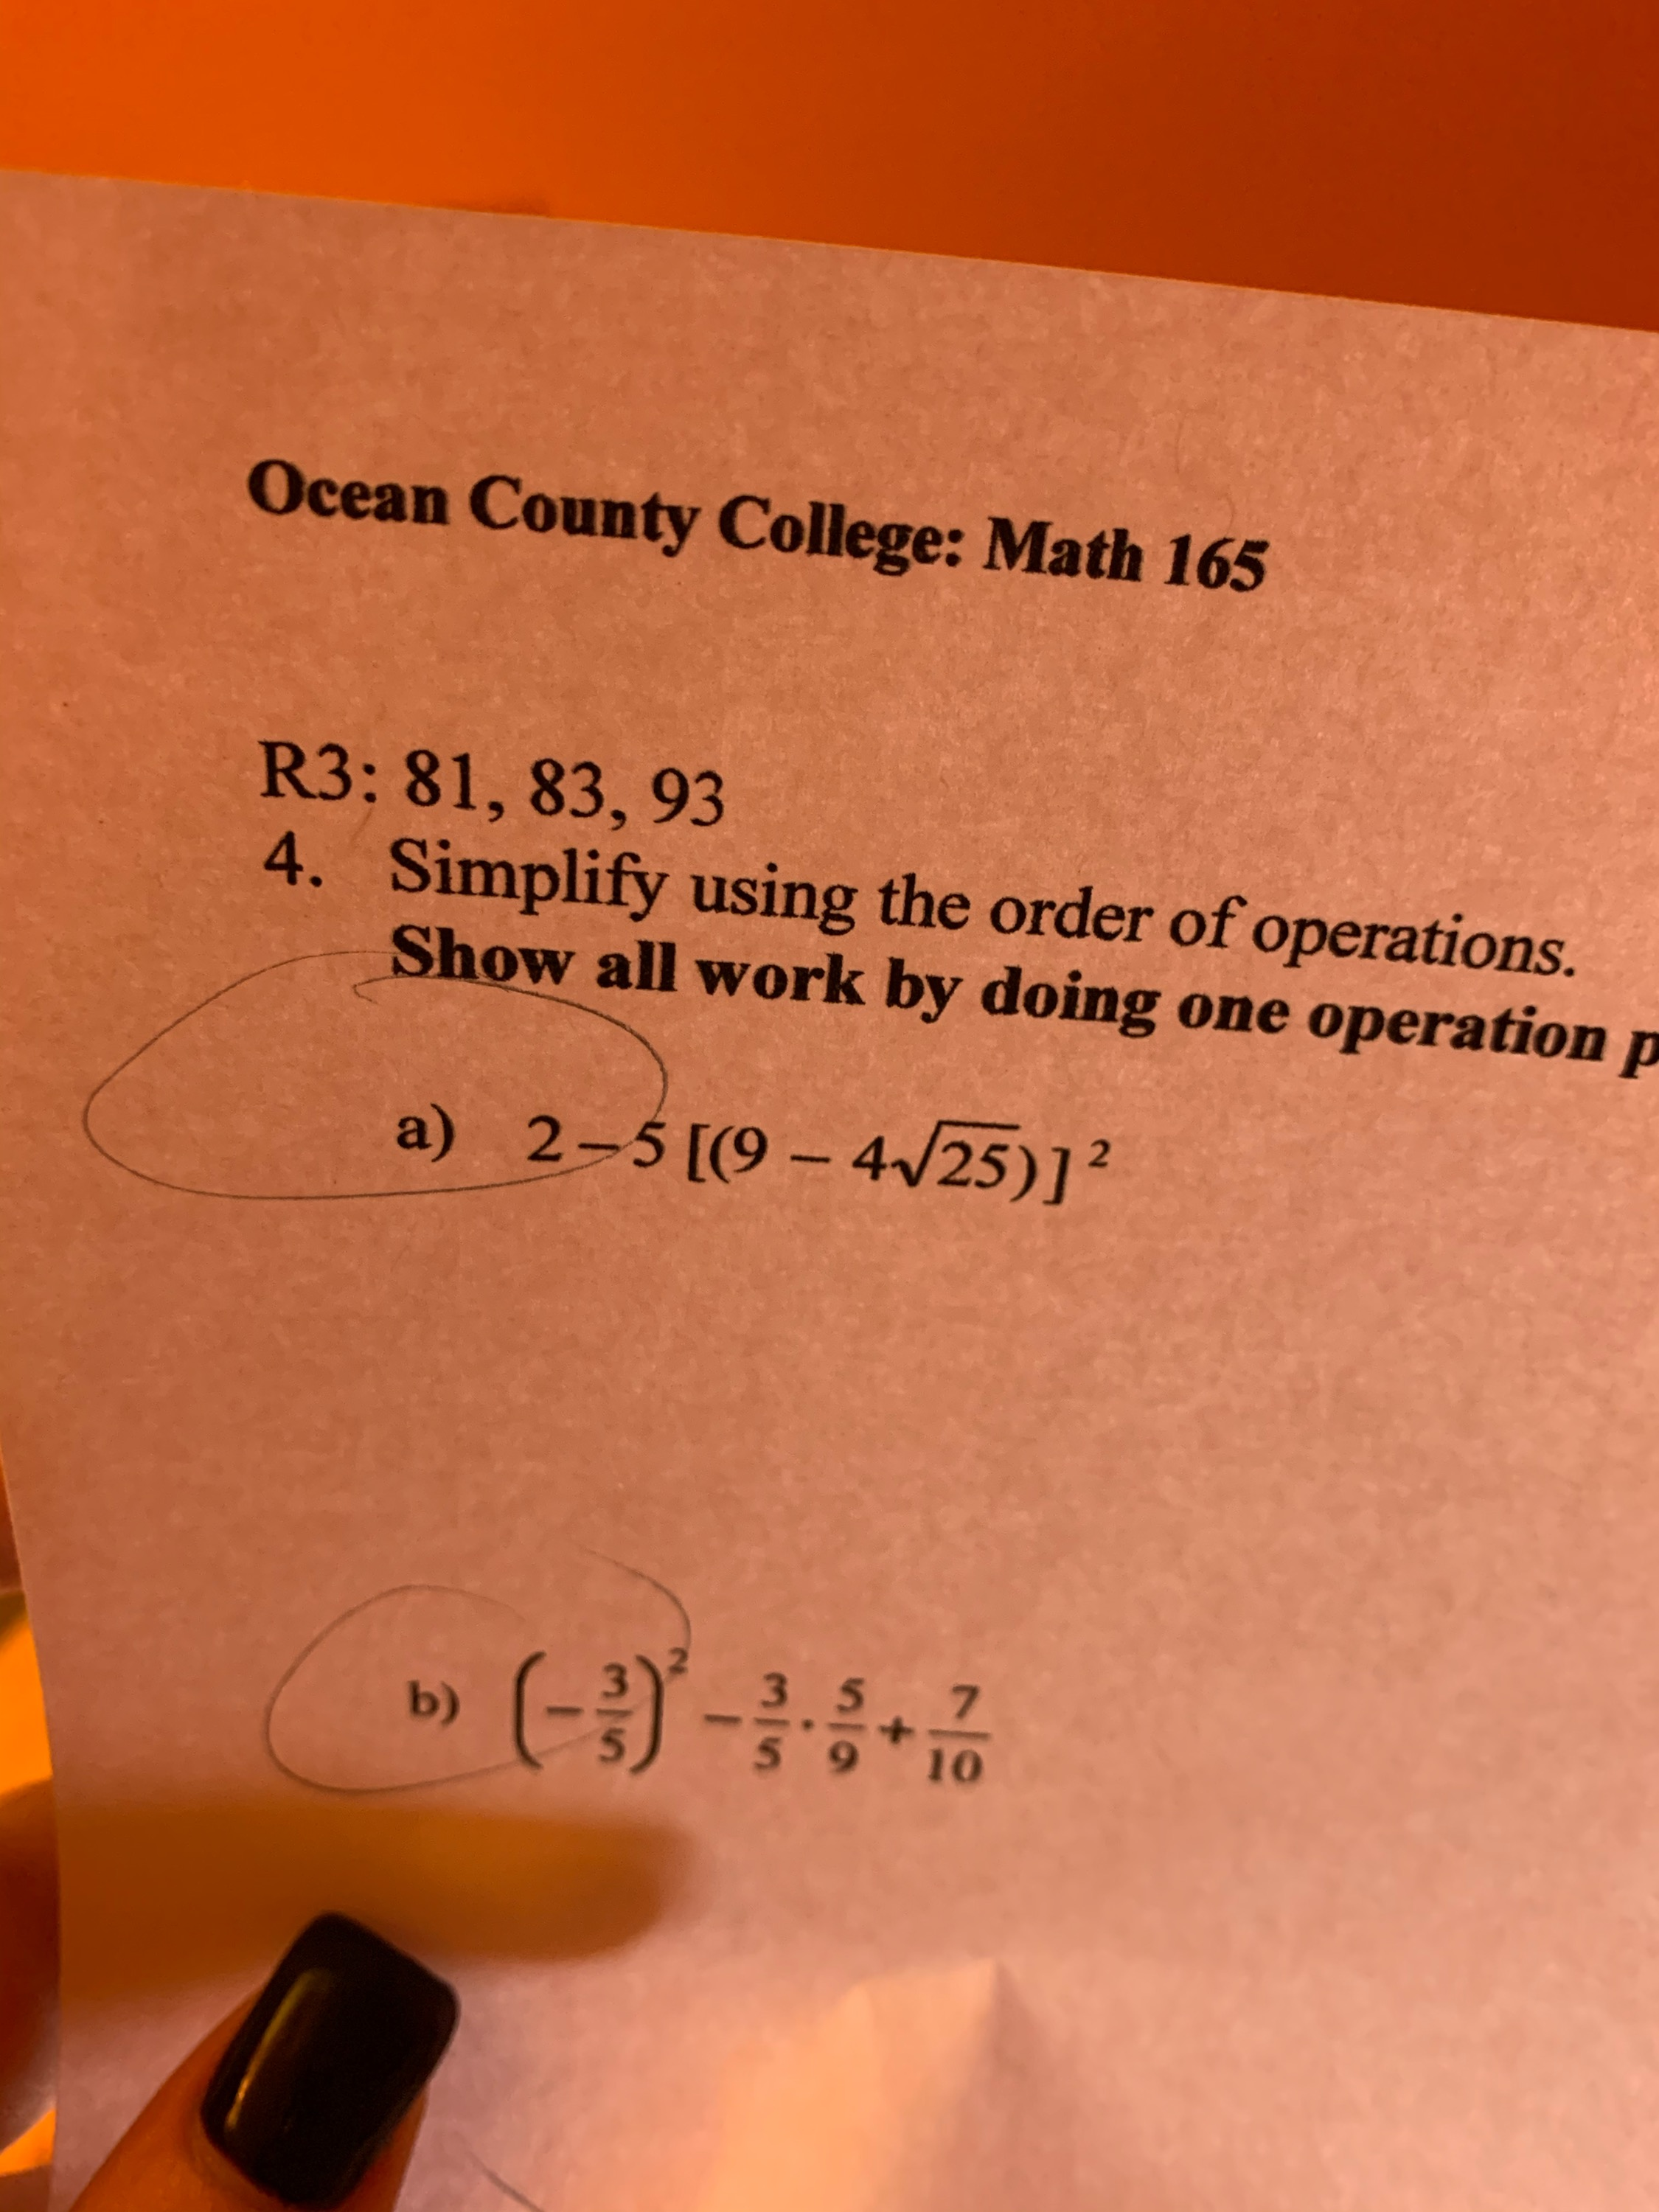 Ocean County College: Math 165 R3: 81, 83, 93 4. Simplify using the order of operations. Show all work by doing one operation p a) 2-5[(9 – 4/25)]? (-)- 357 59 10 b)